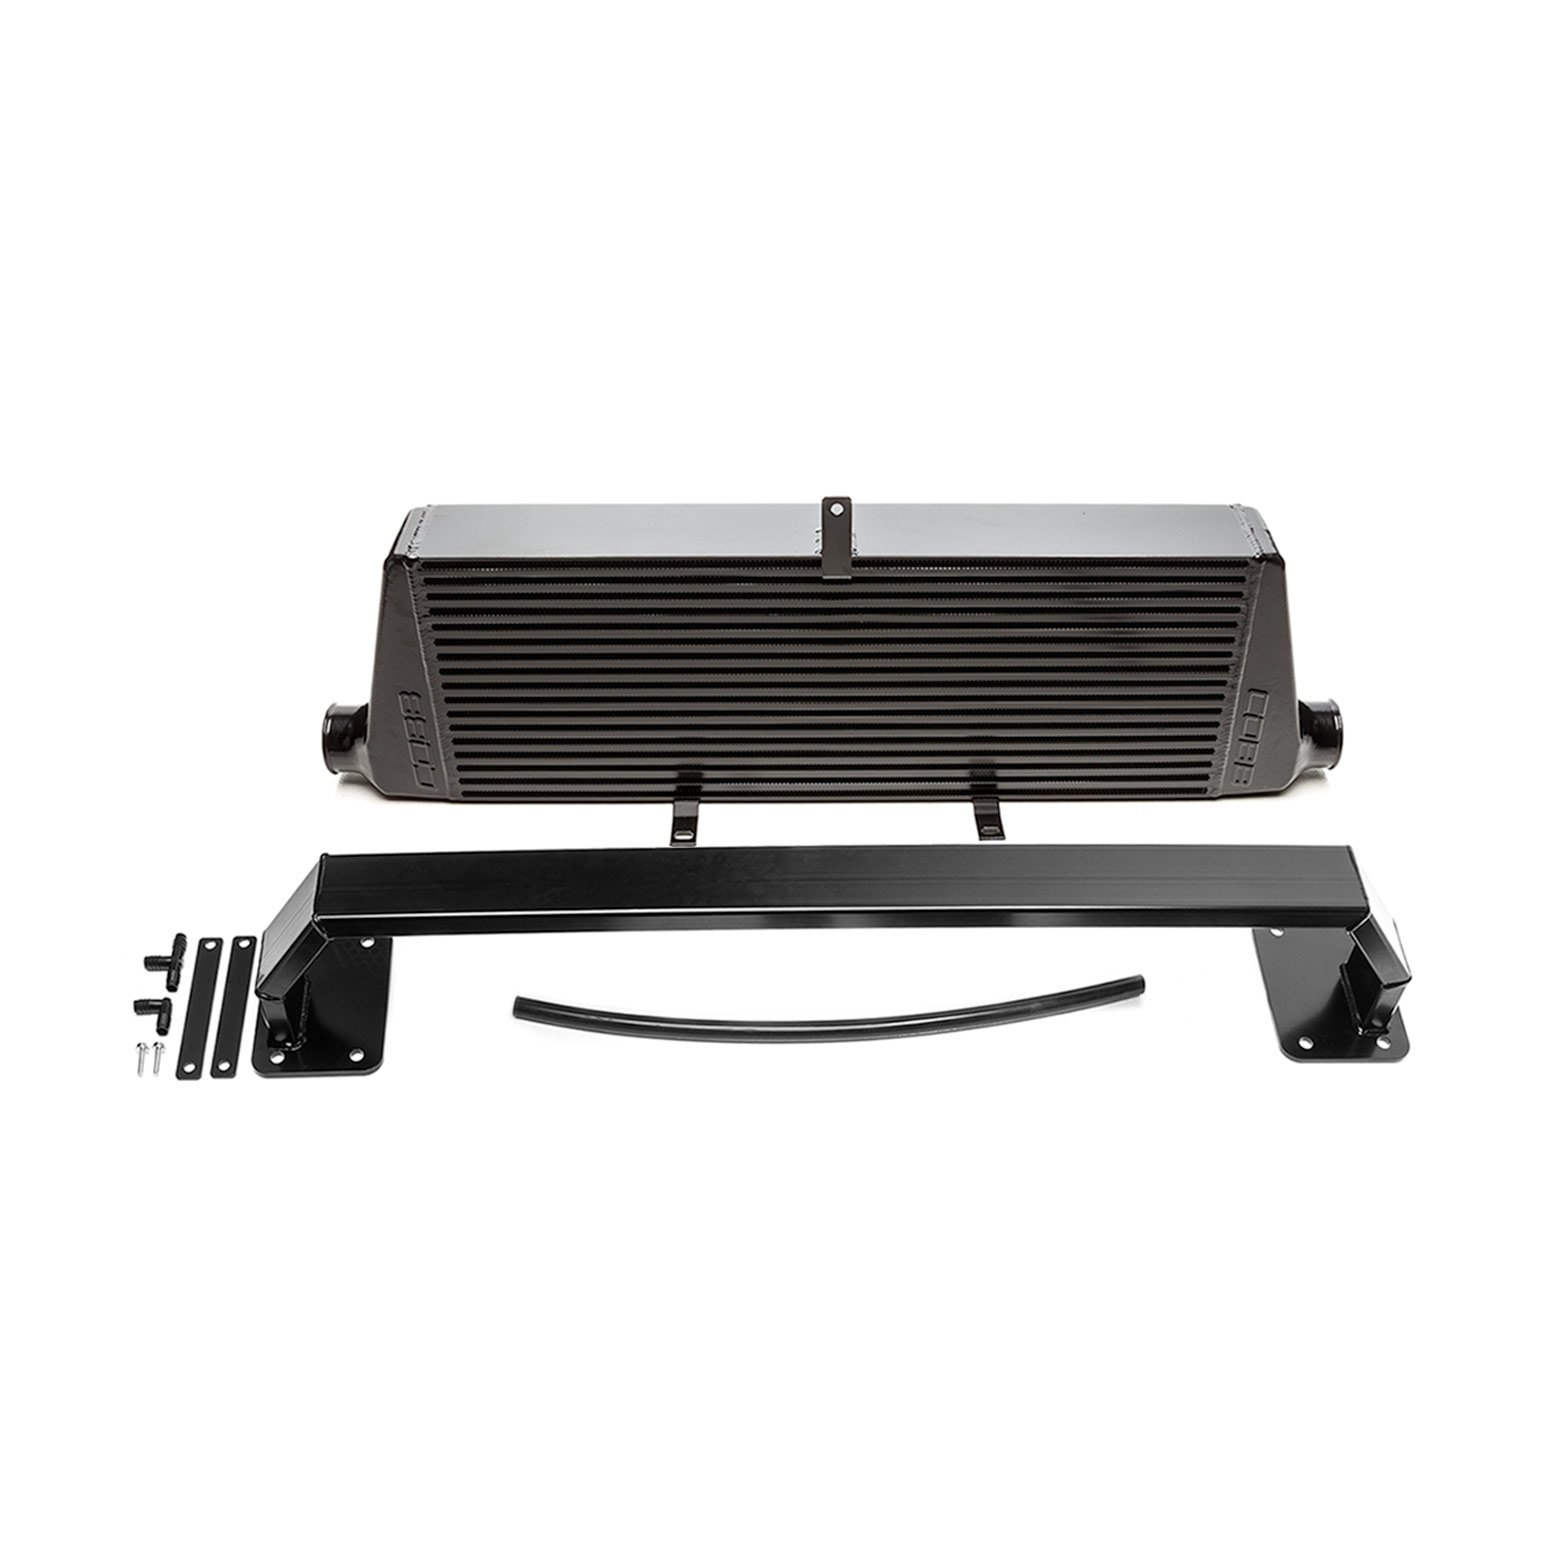 Subaru Front Mount Intercooler Kit (Black) WRX 2011-2014